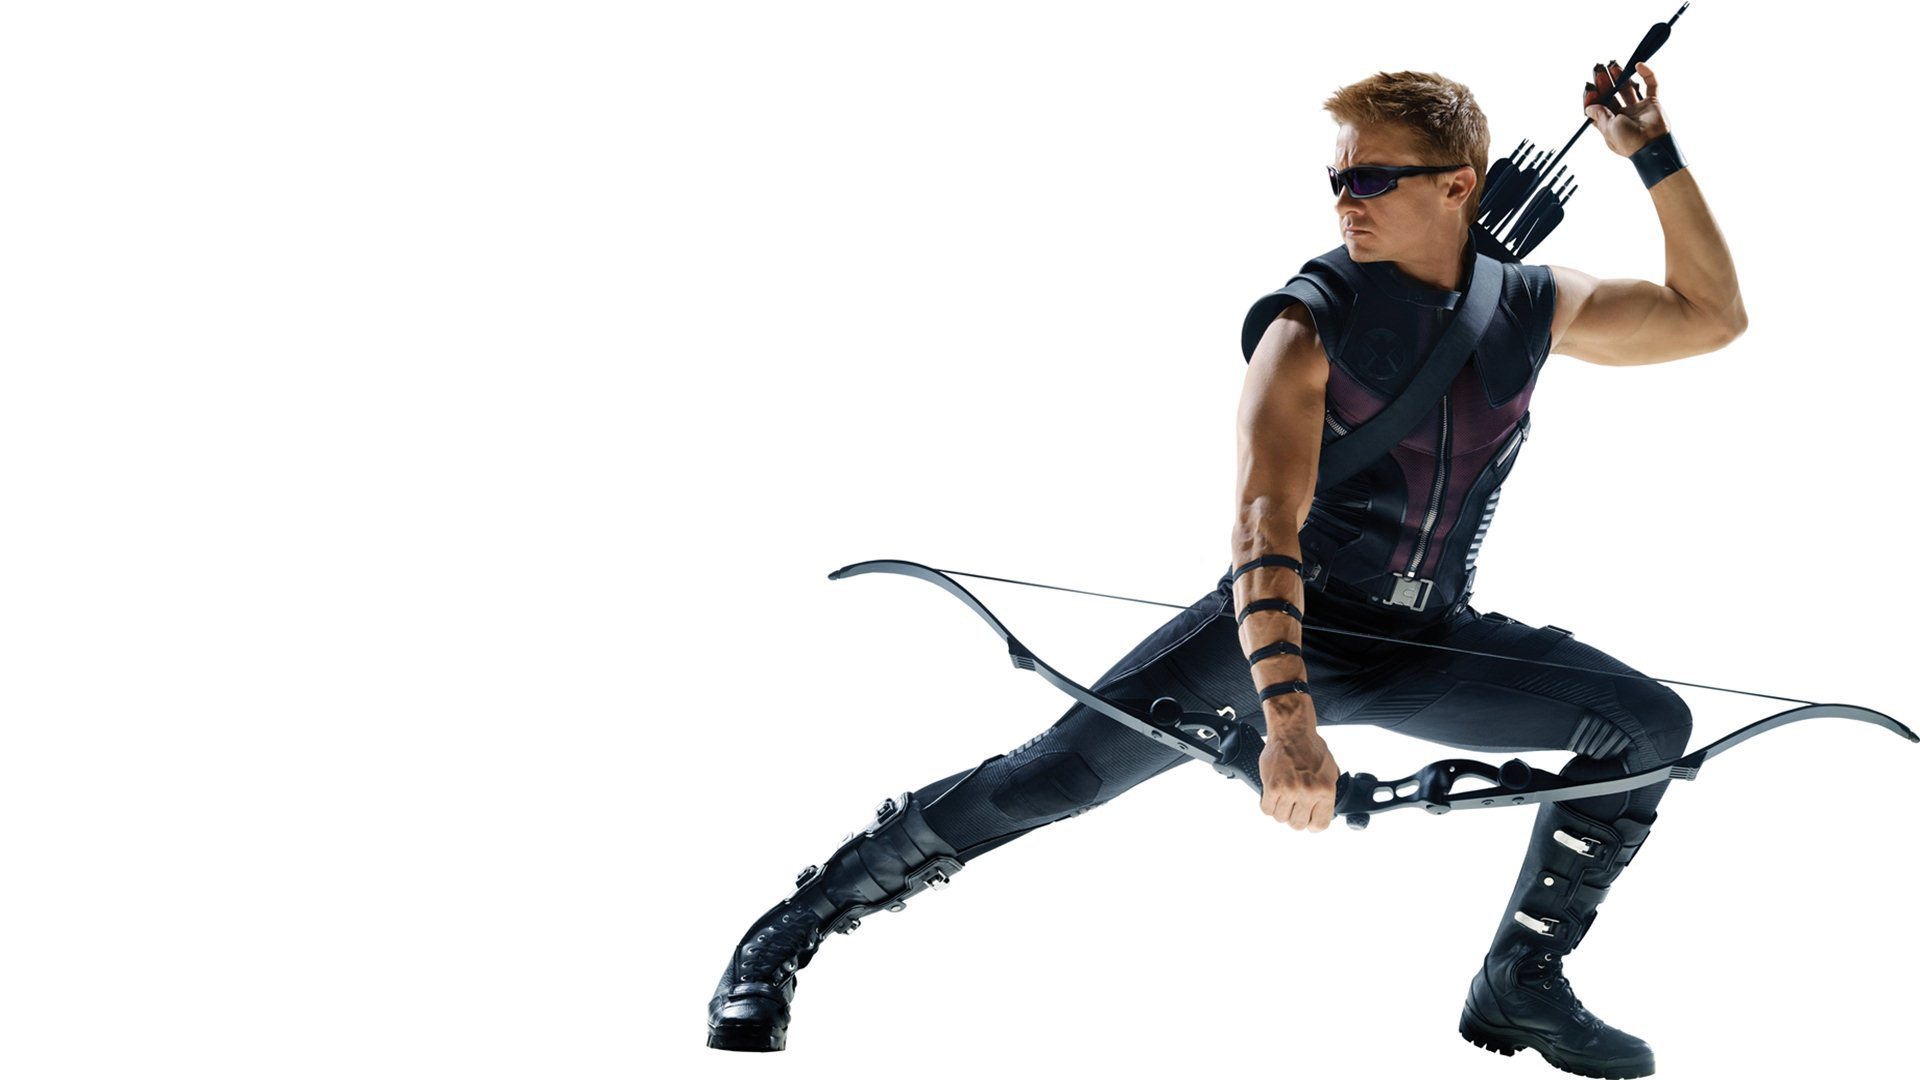 Hawkeye Wallpaper For Computer